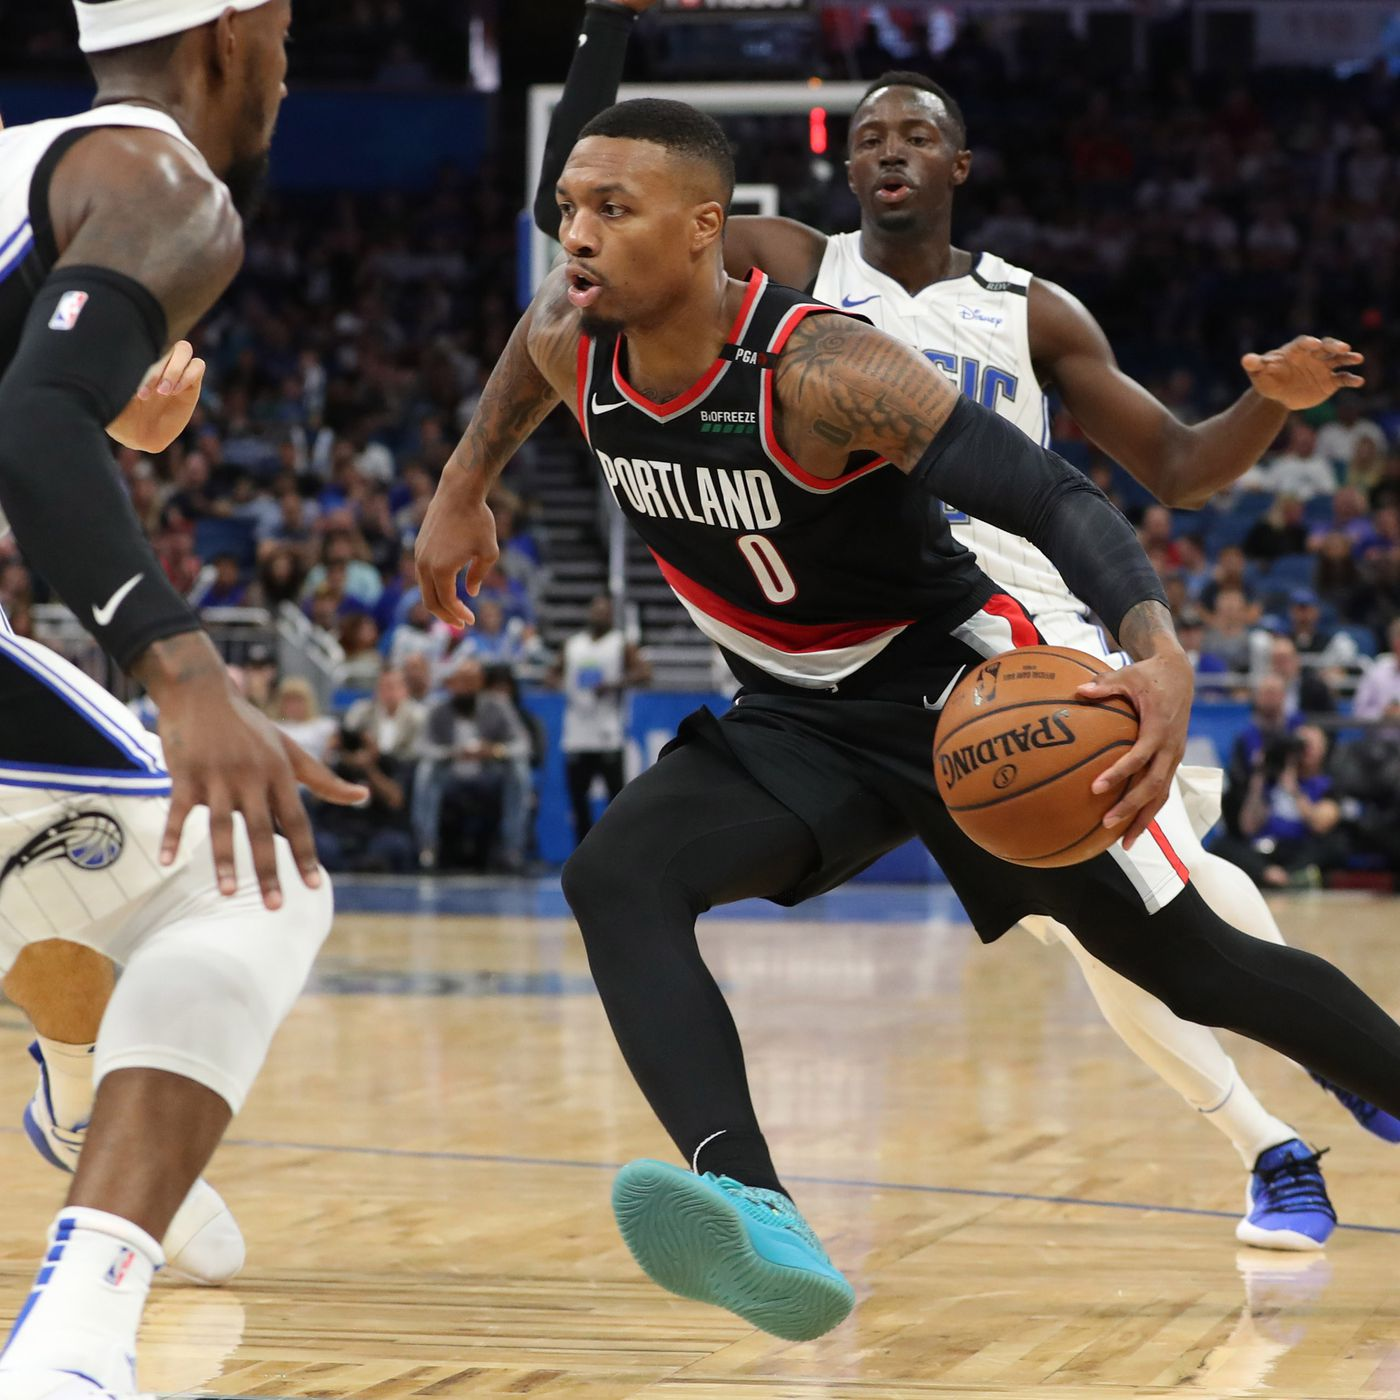 Possible Images Of Damian Lillard S New Adidas Dame 5 Shoes Surface Blazer S Edge